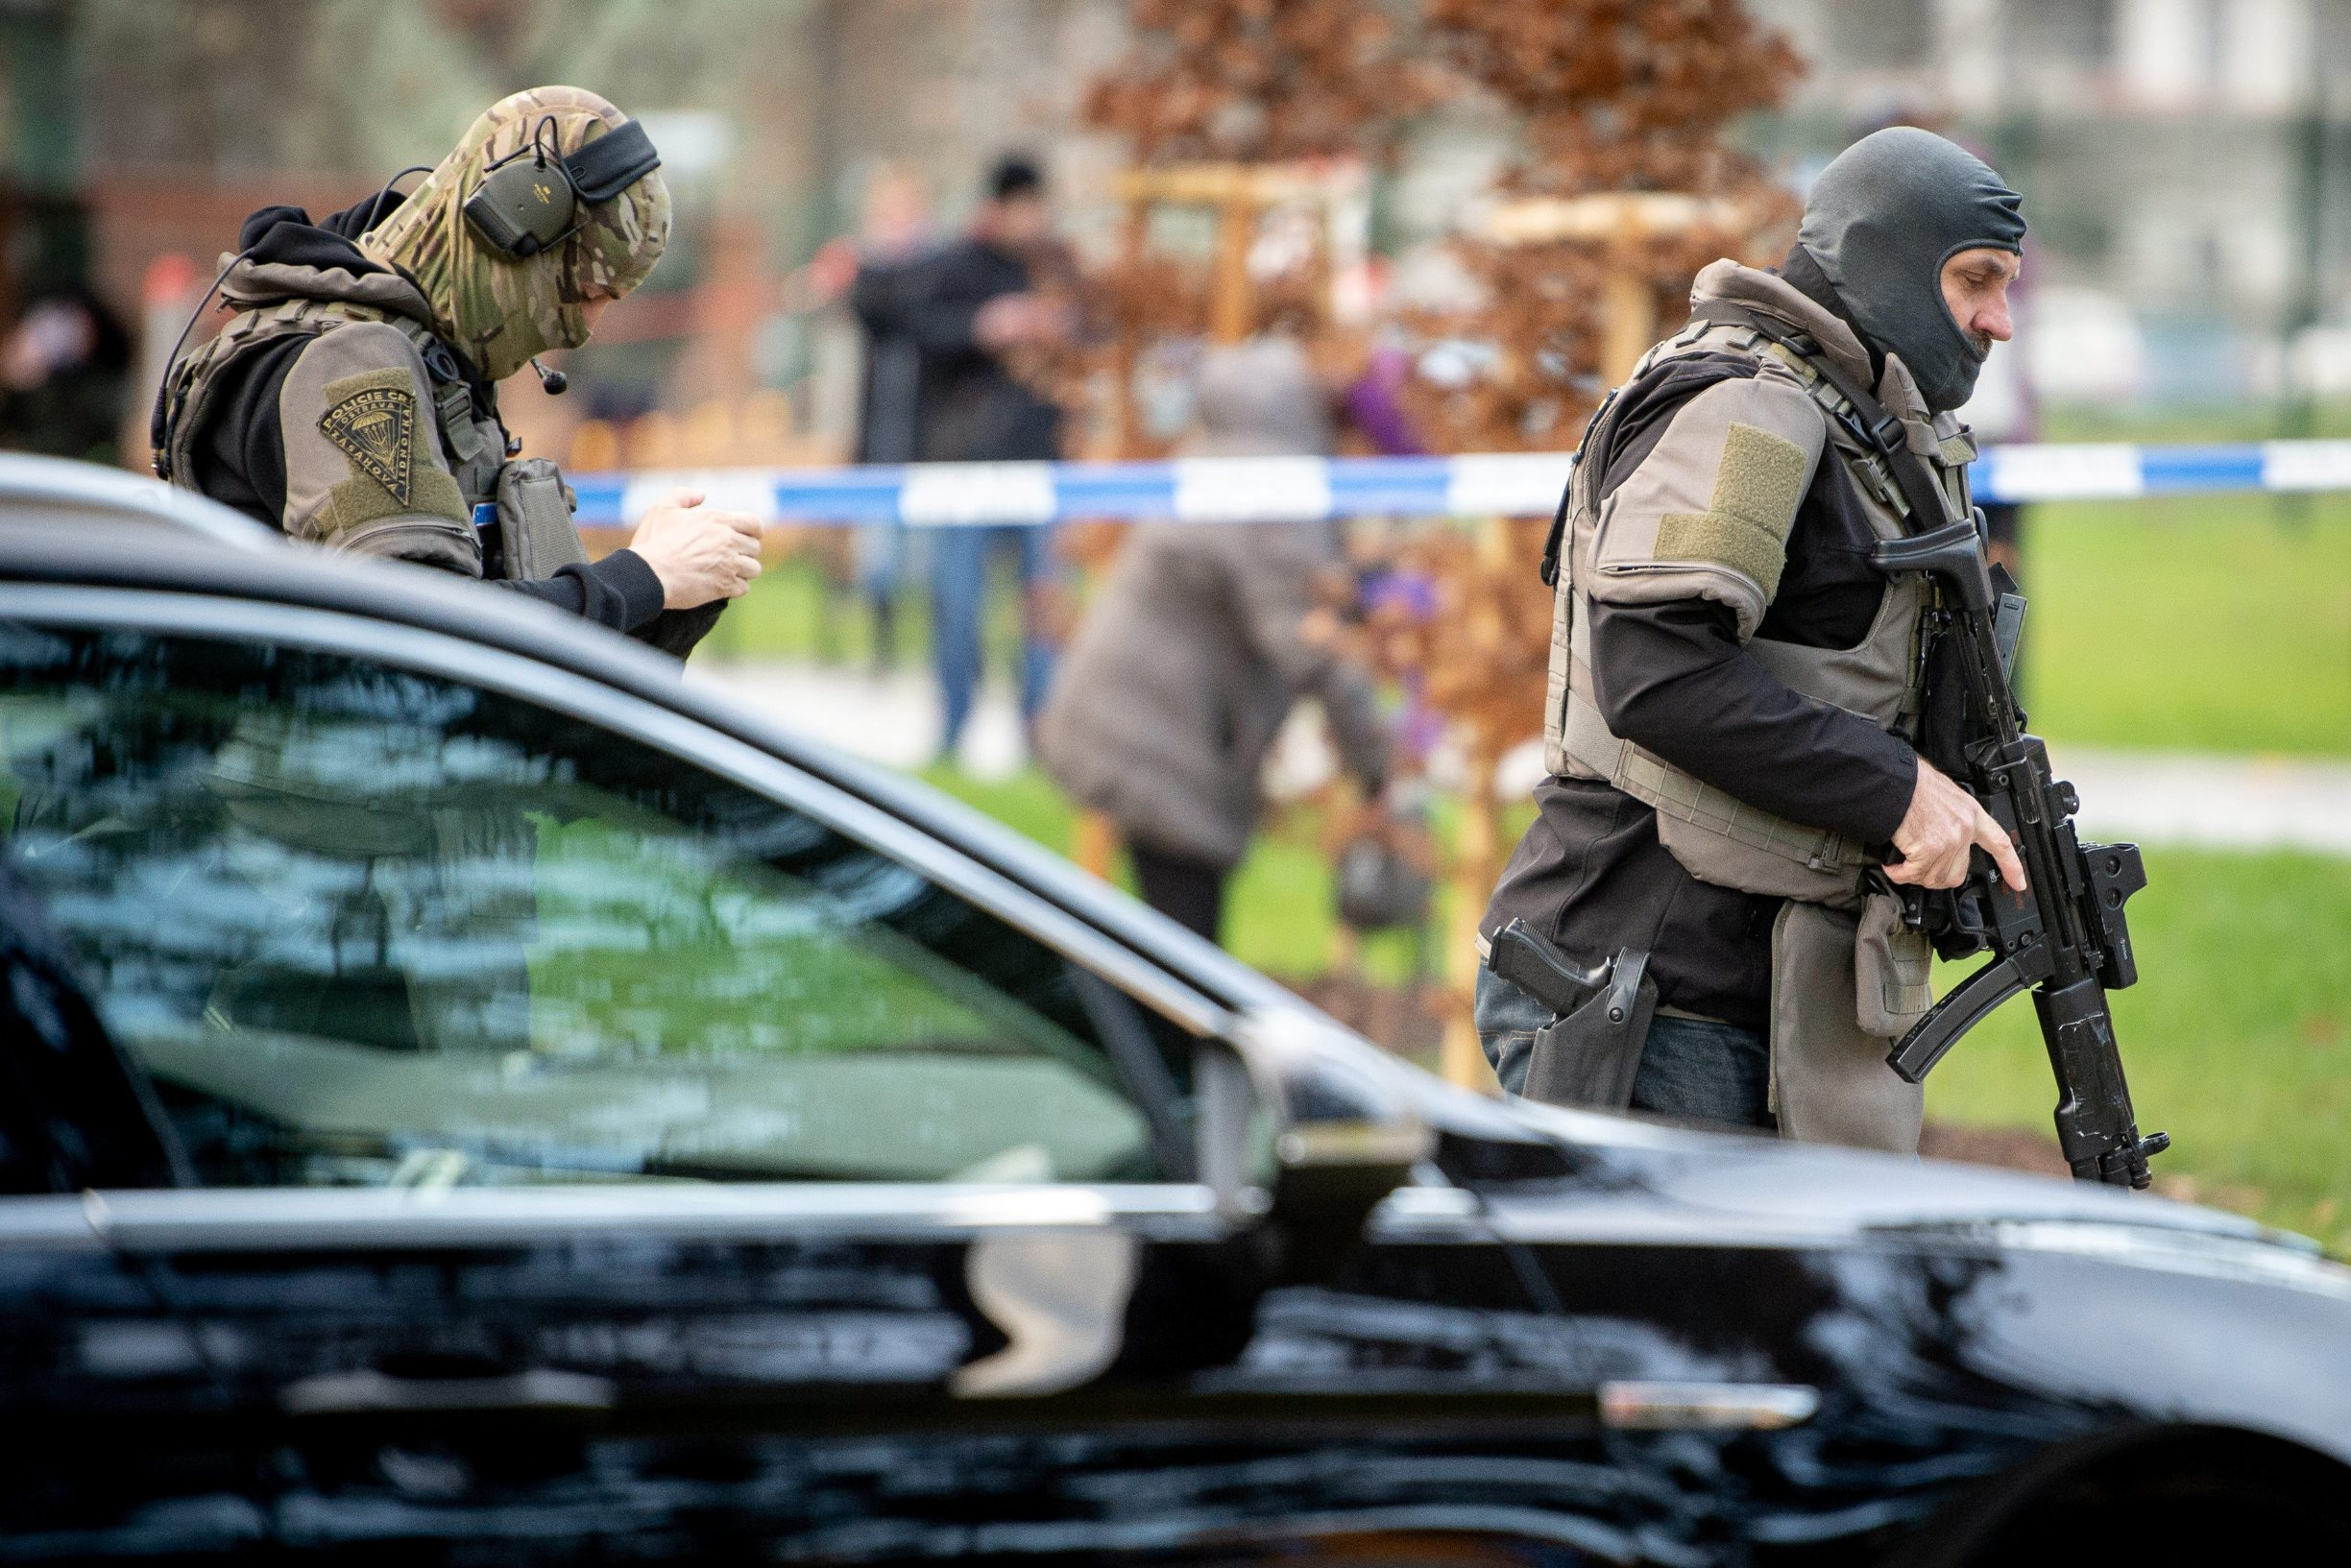 Police officers are seen near the site of a shooting in front of a hospital in Ostrava, Czech Republic, December 10, 2019.   REUTERS/Lukas Kabon